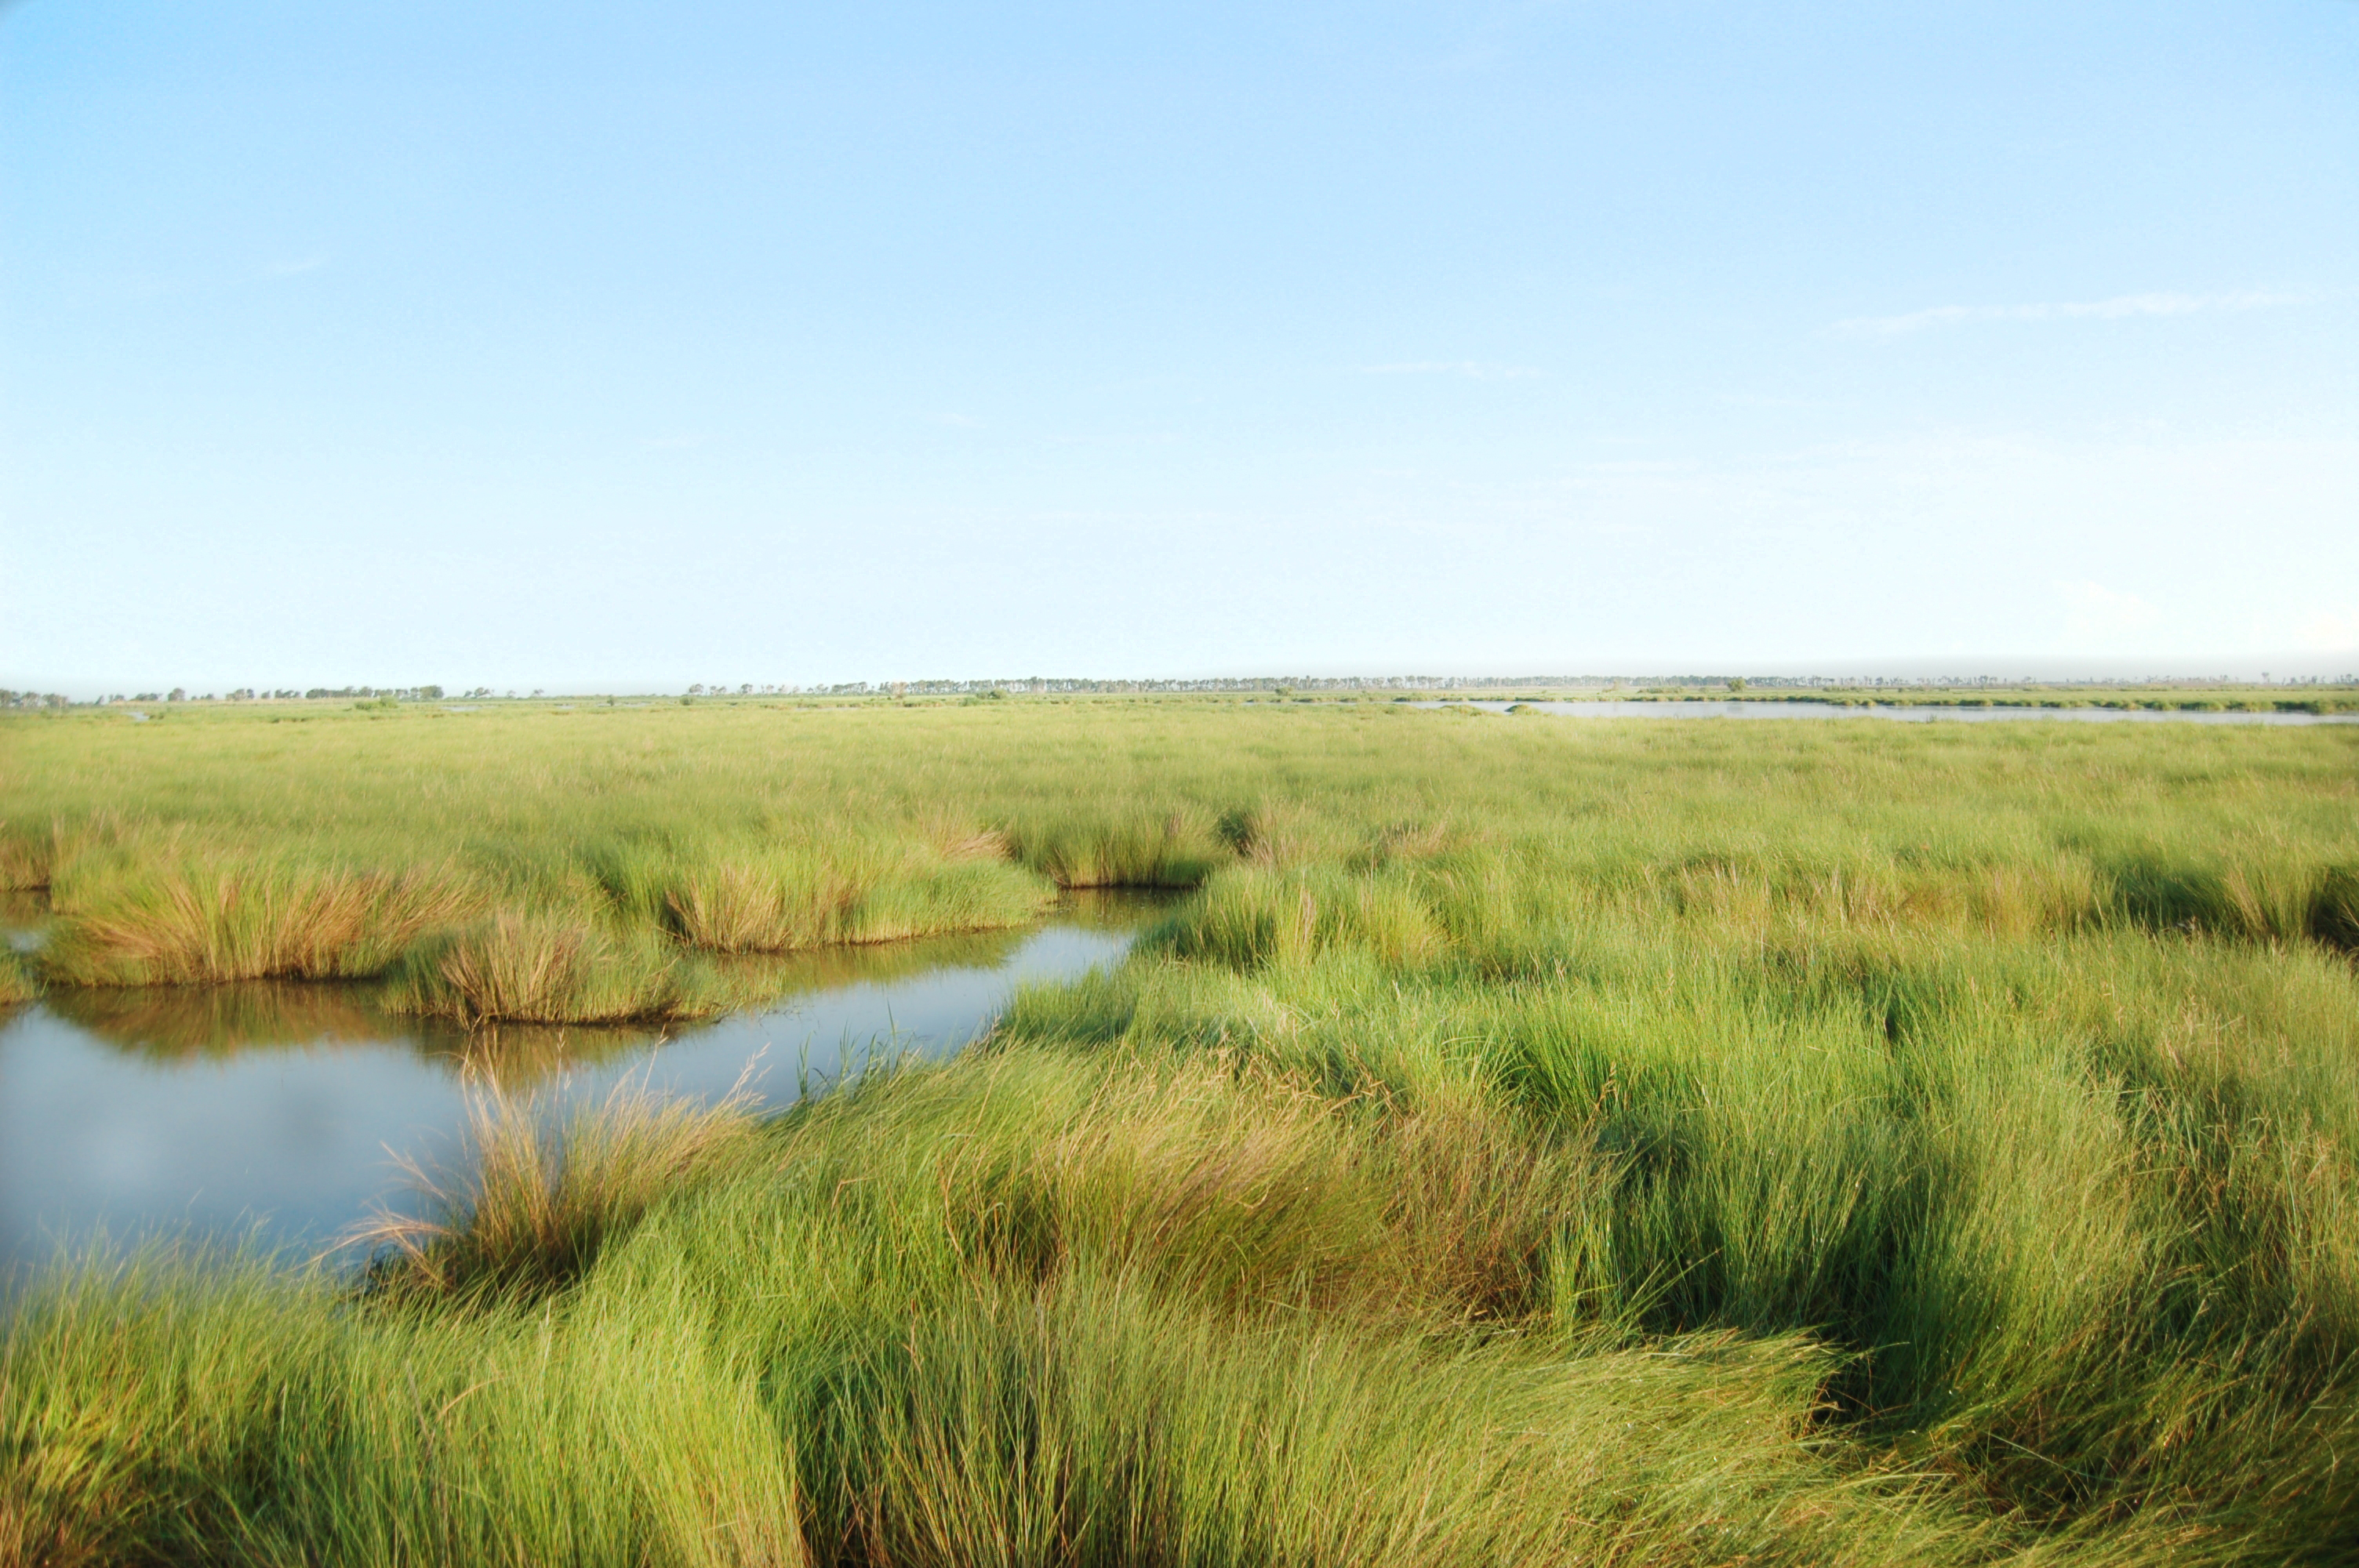 A landscape of marsh, grasses and natural water channels.